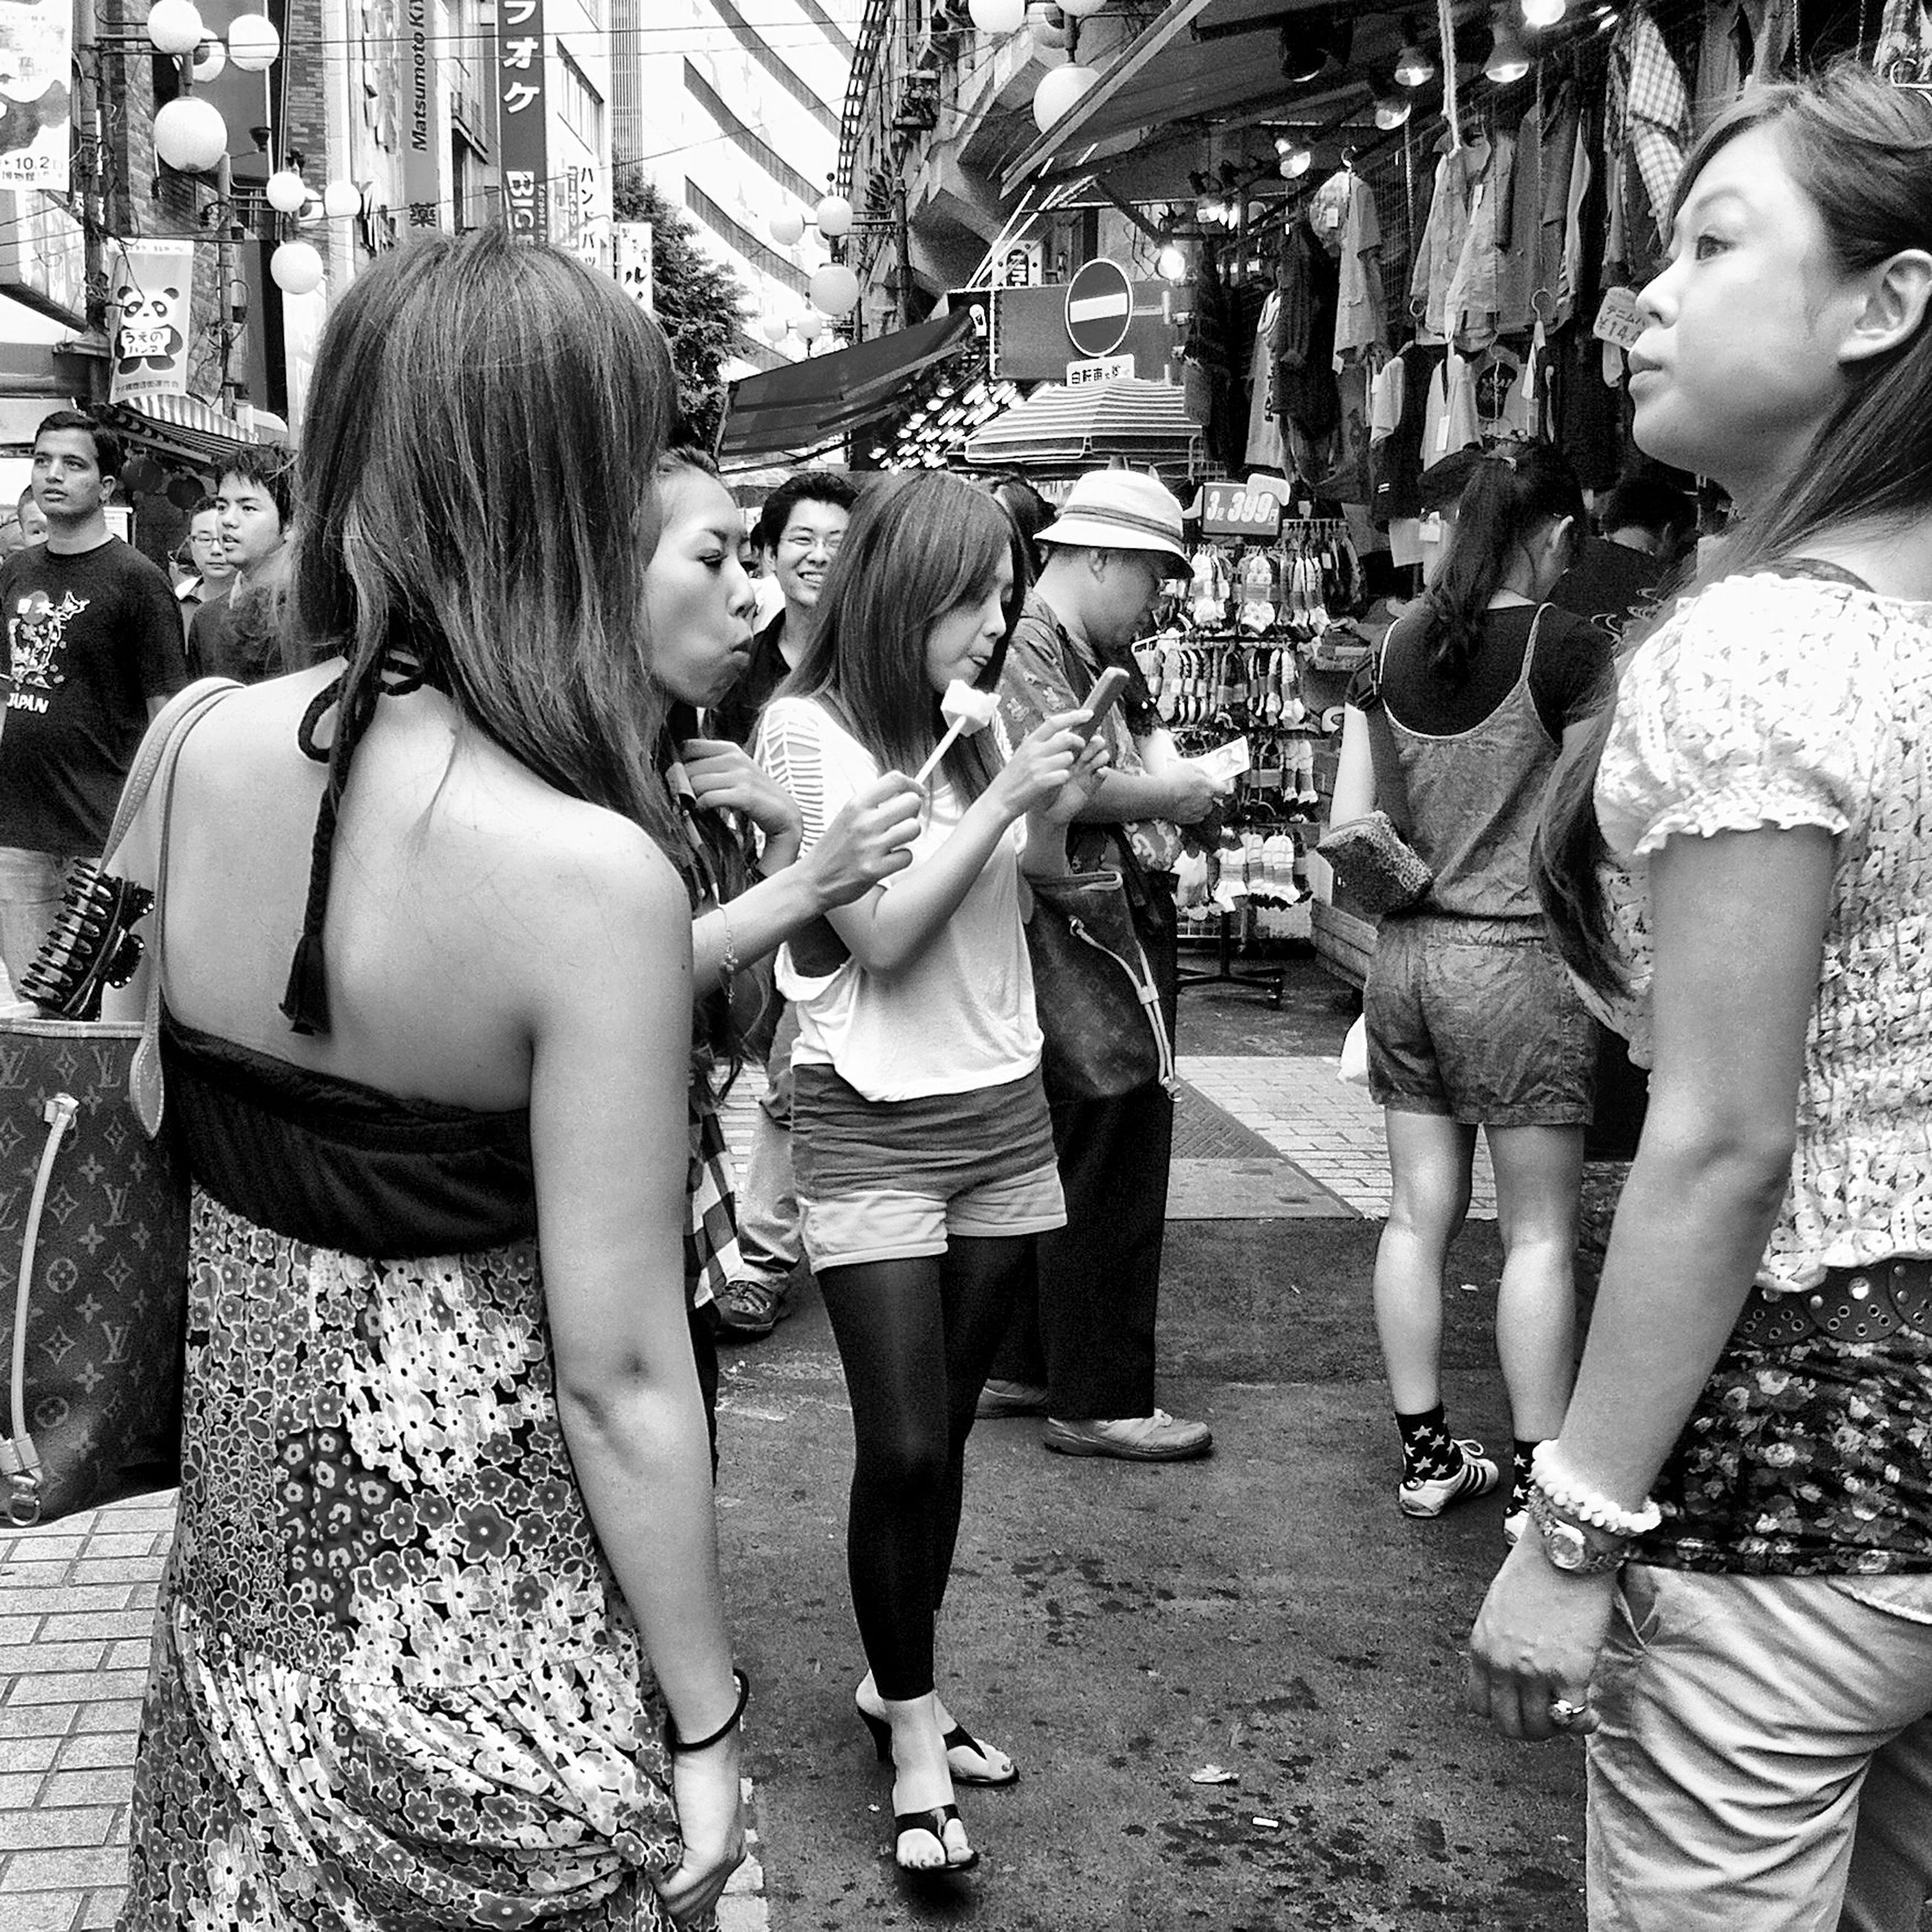 lifestyles, togetherness, leisure activity, casual clothing, bonding, childhood, girls, person, full length, love, friendship, family, boys, street, city, sitting, men